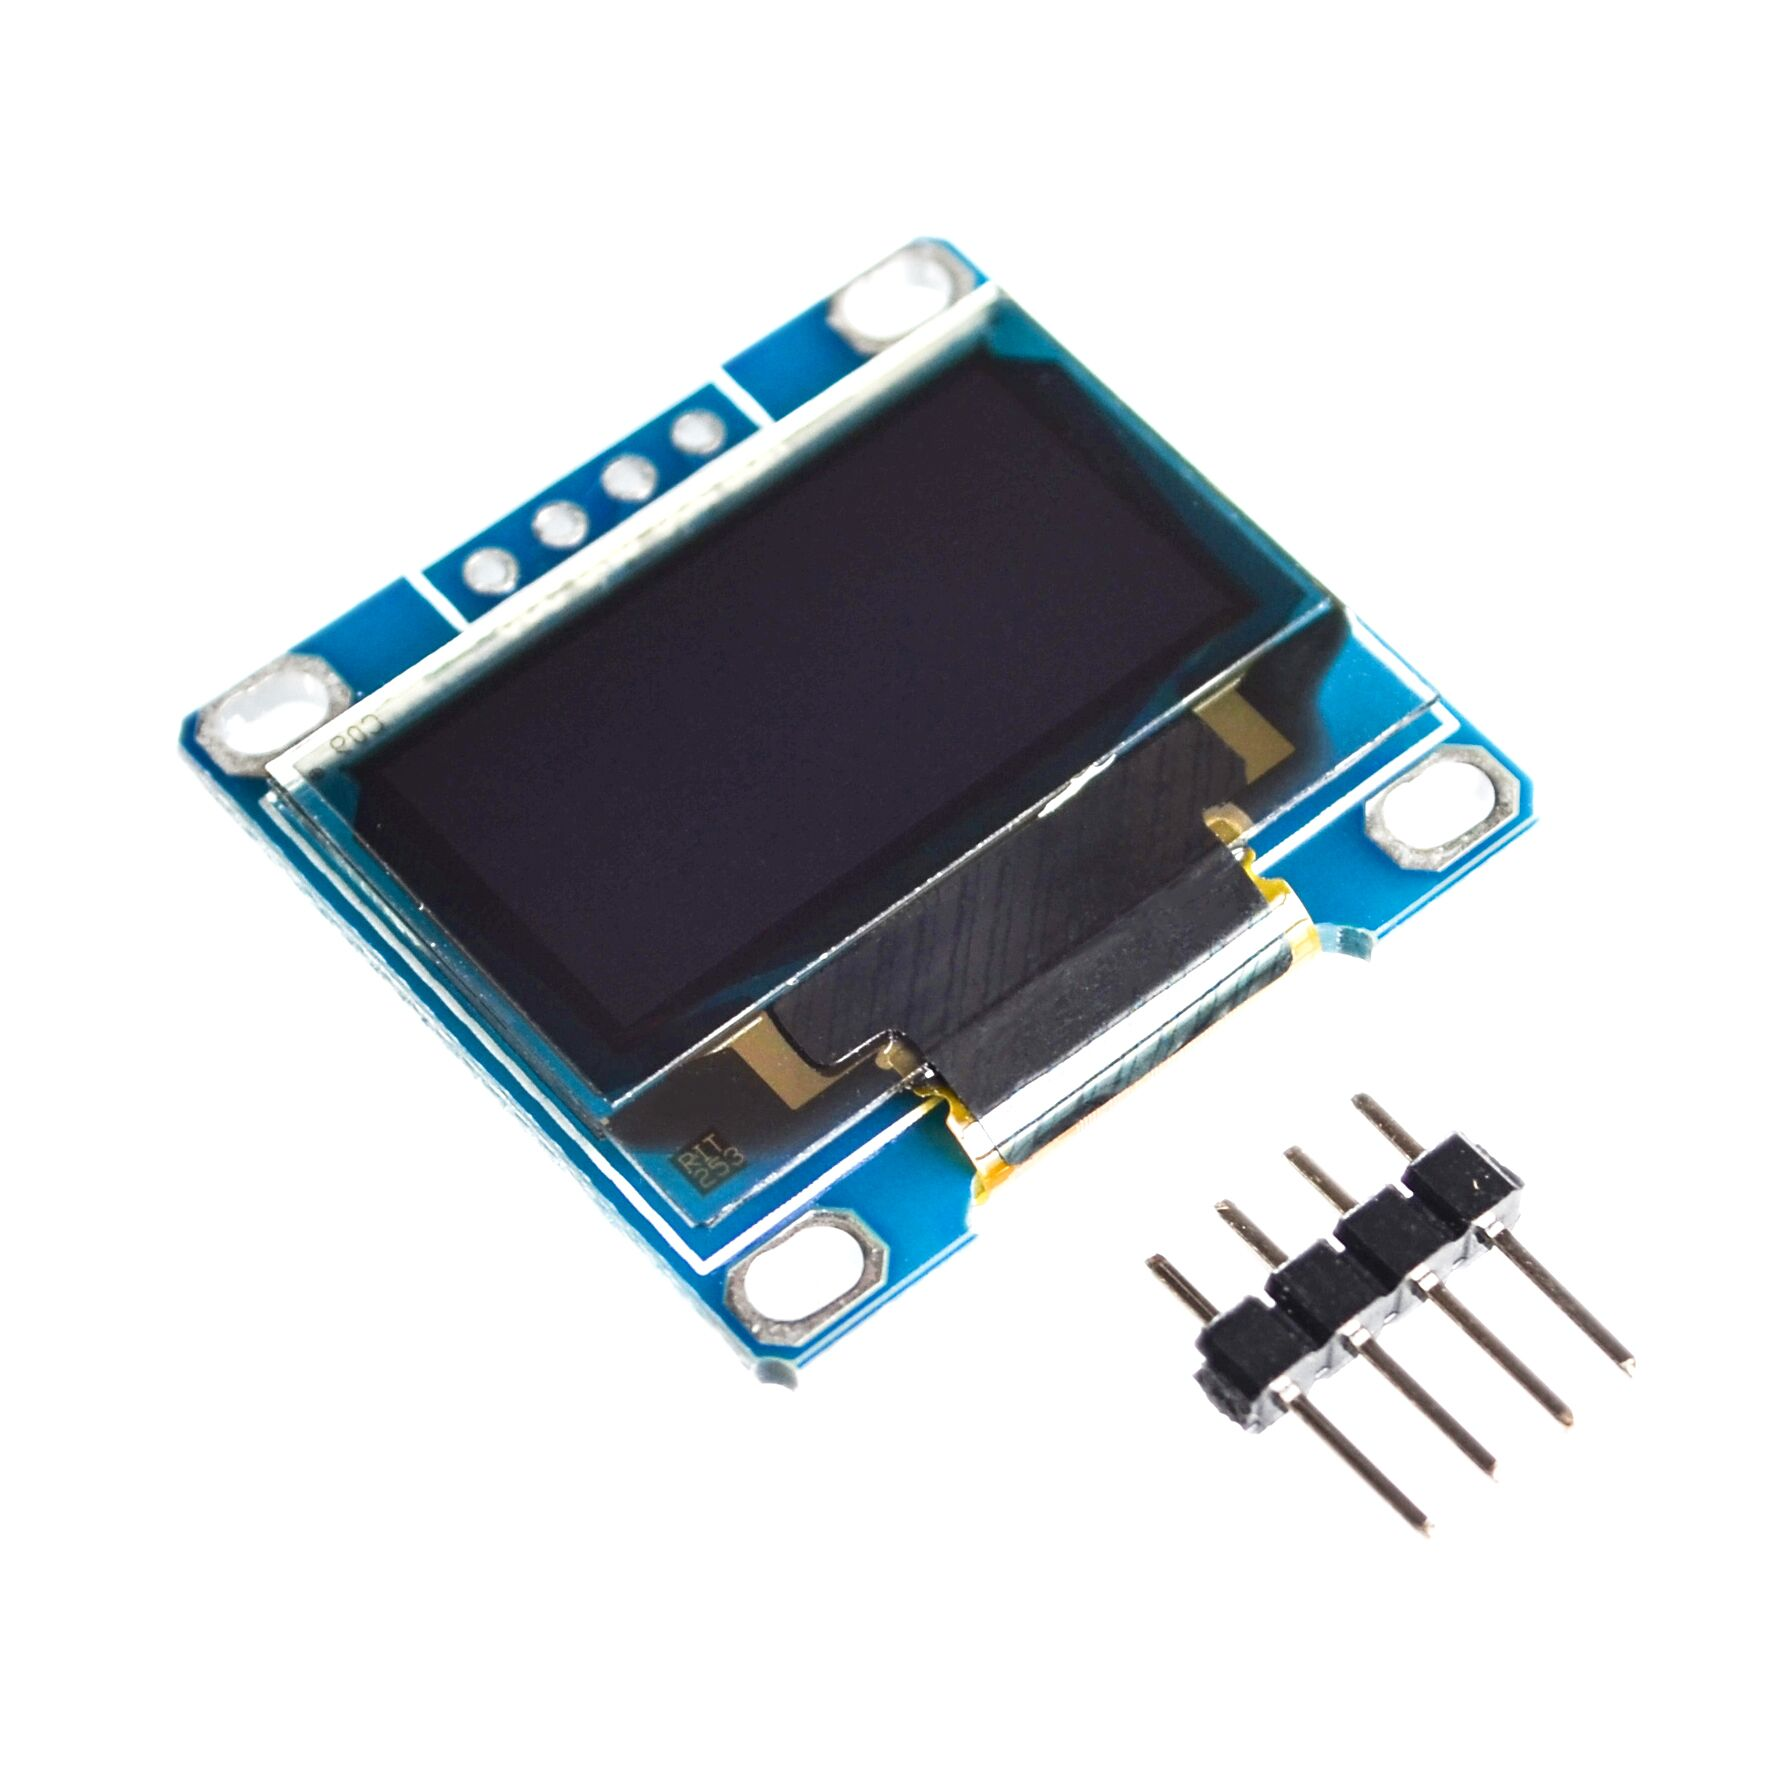 10pcs/lot White Blue color 128X64 OLED LCD LED Display Module For Arduino 0.96 I2C IIC Serial new original with CaseI